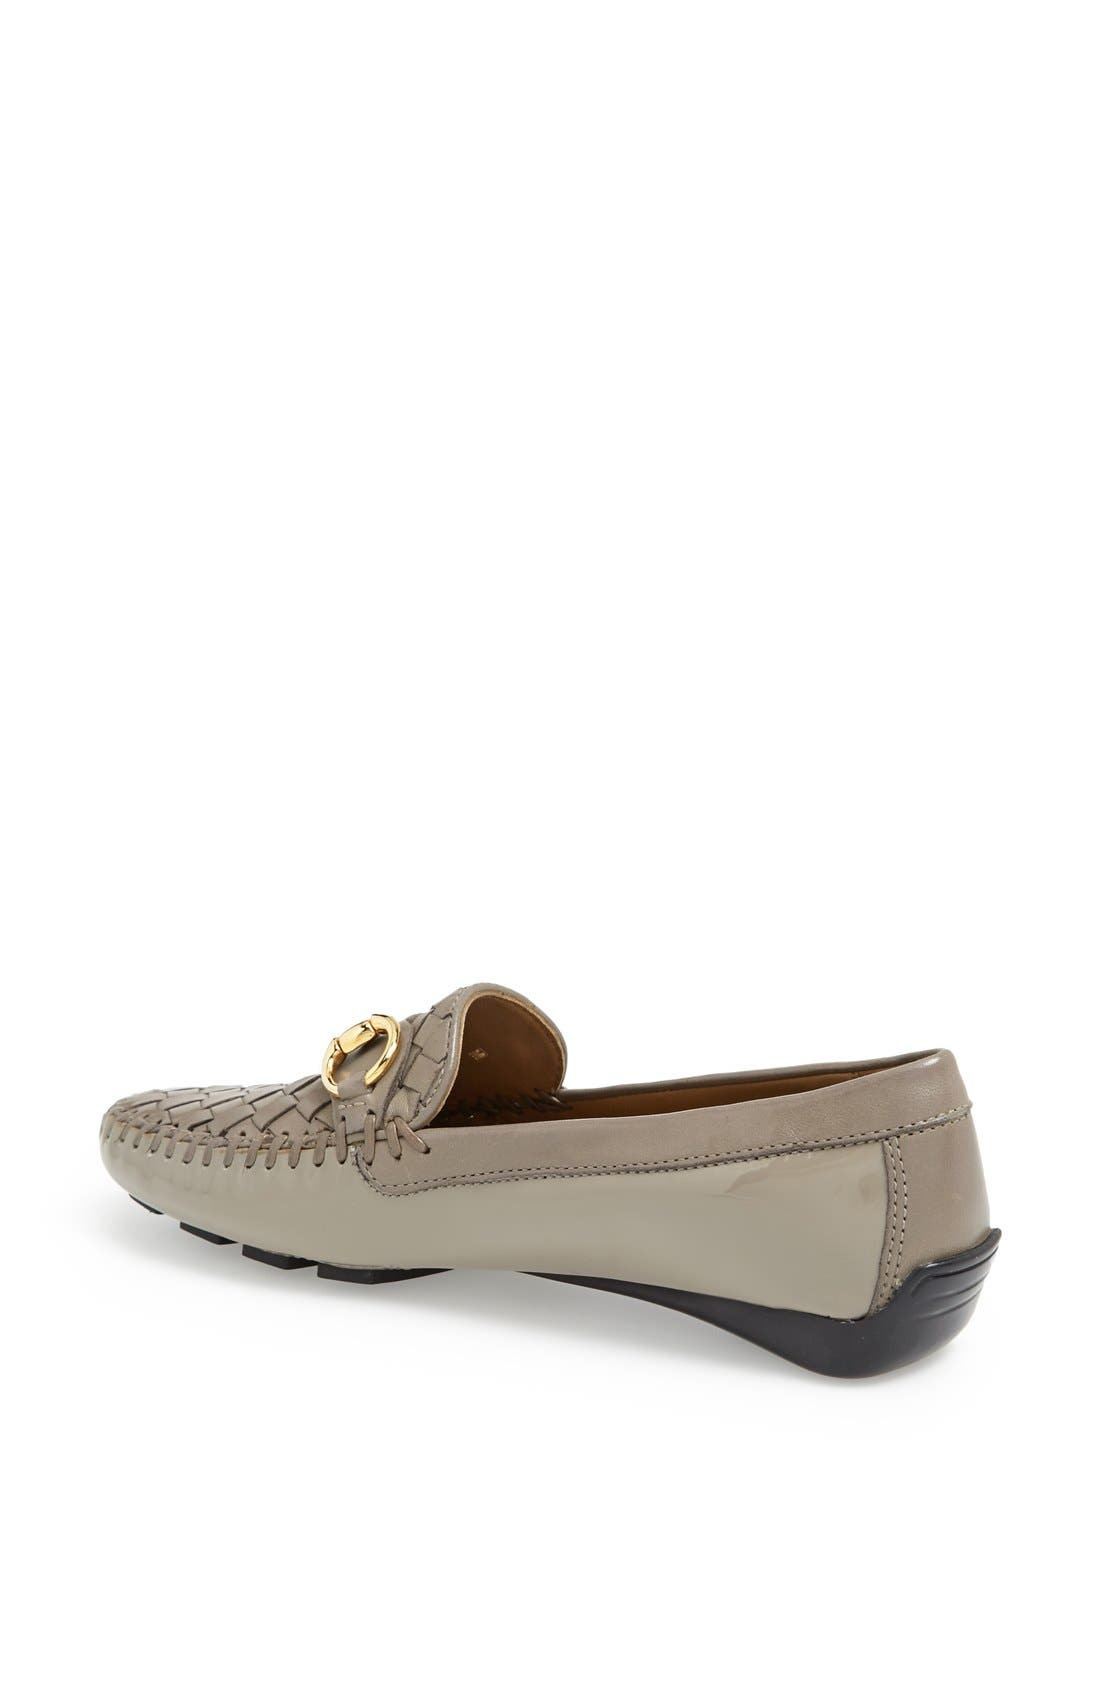 'Perlata' Loafer,                             Alternate thumbnail 2, color,                             Taupe Patent